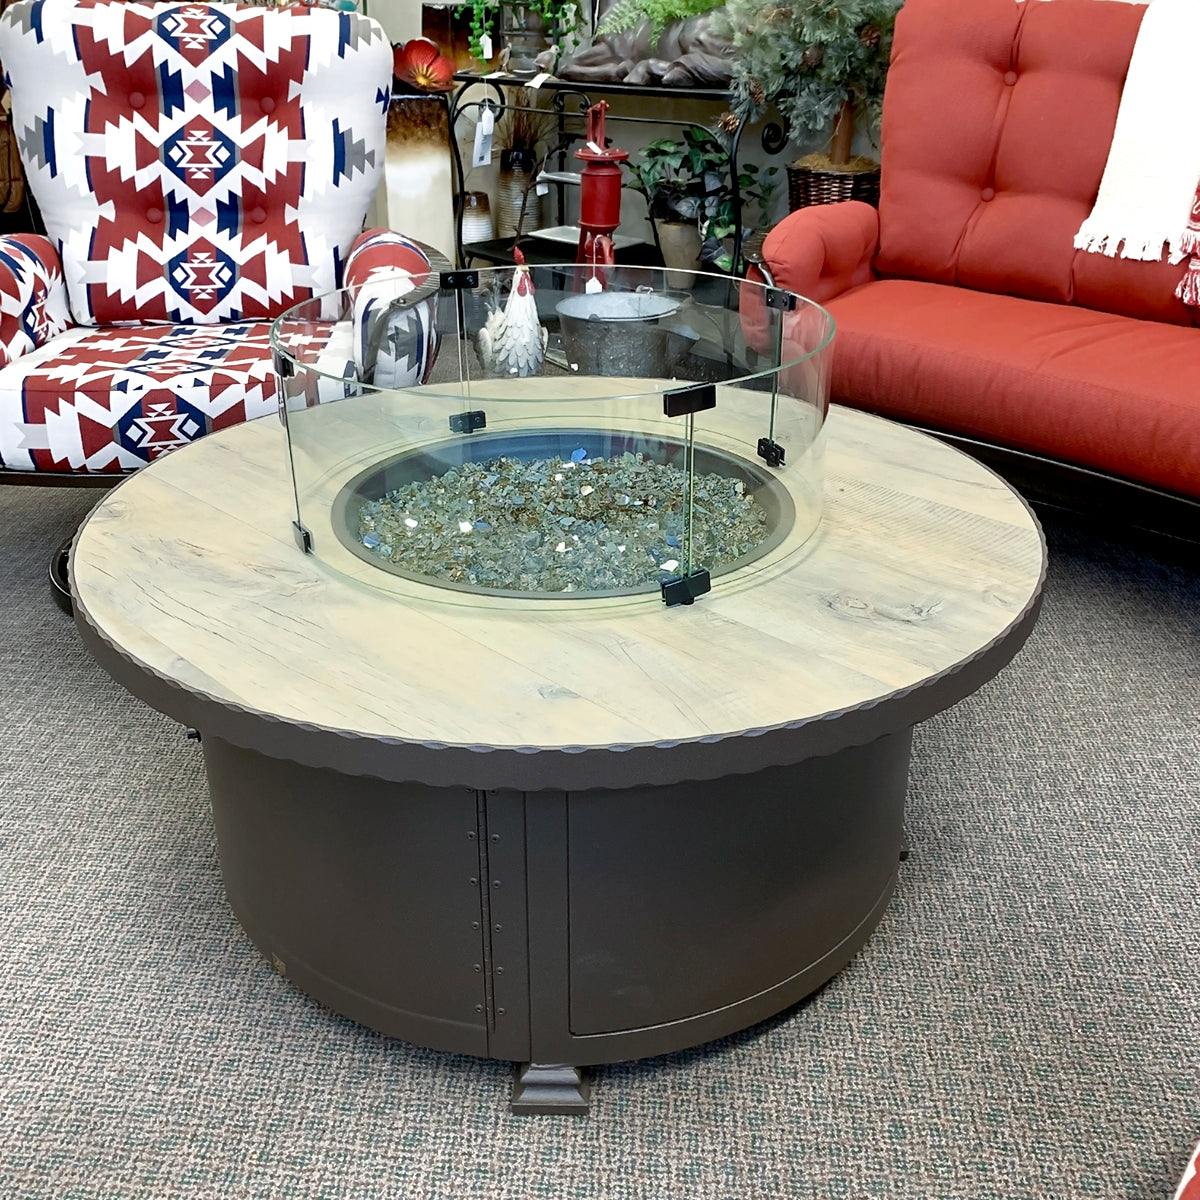 "O.W. Lee Buckskin 42"" Round Fire Pit W/Hammered Edge Santorini Rectangle Fire Pit is available at Jacobs Custom Living our Jacobs Custom Living Spokane Valley showroom."